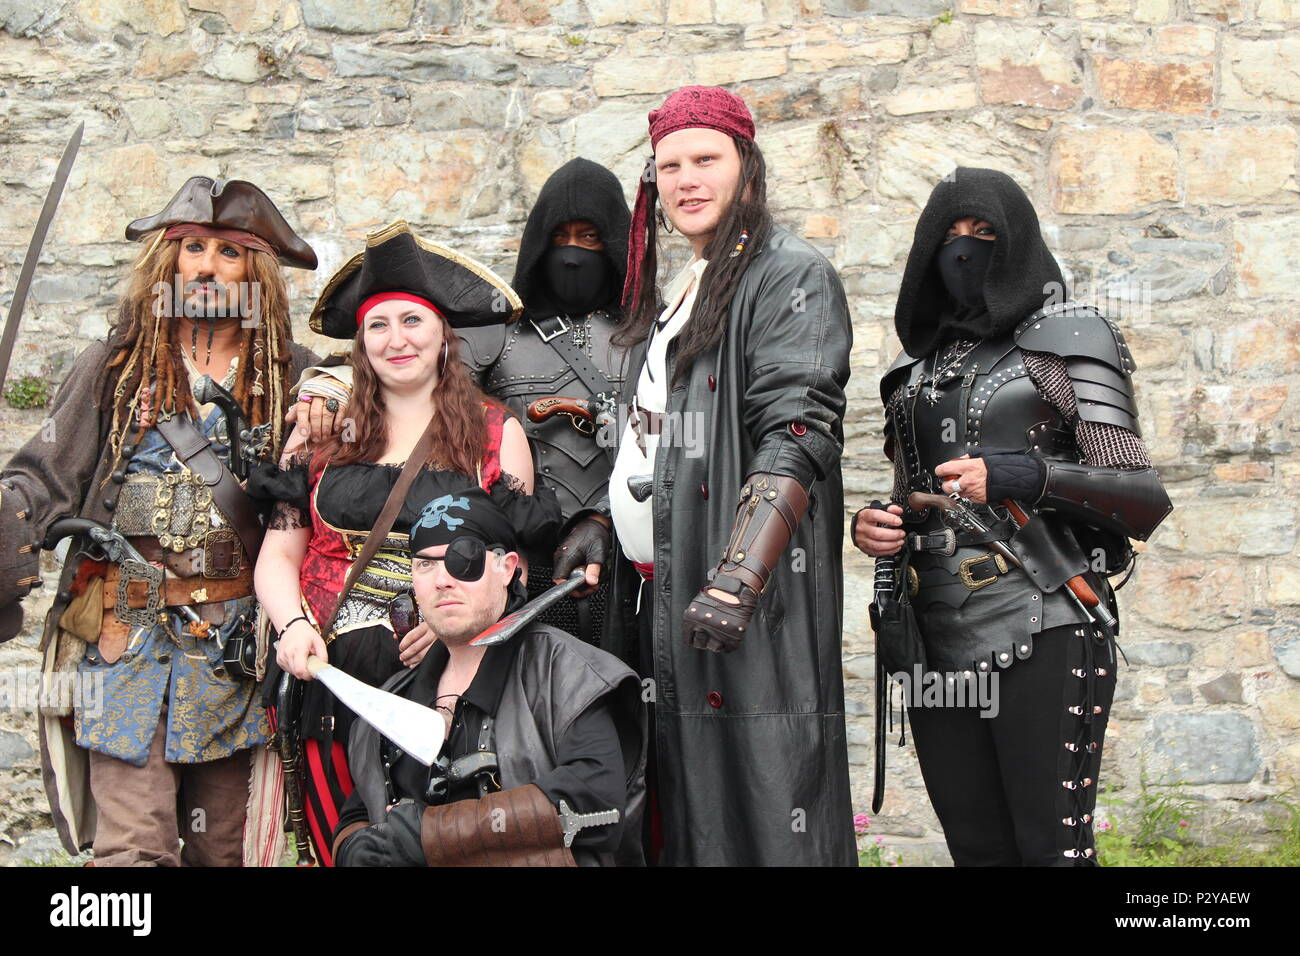 Conwy Pirate Stock Photos & Conwy Pirate Stock Images - Alamy